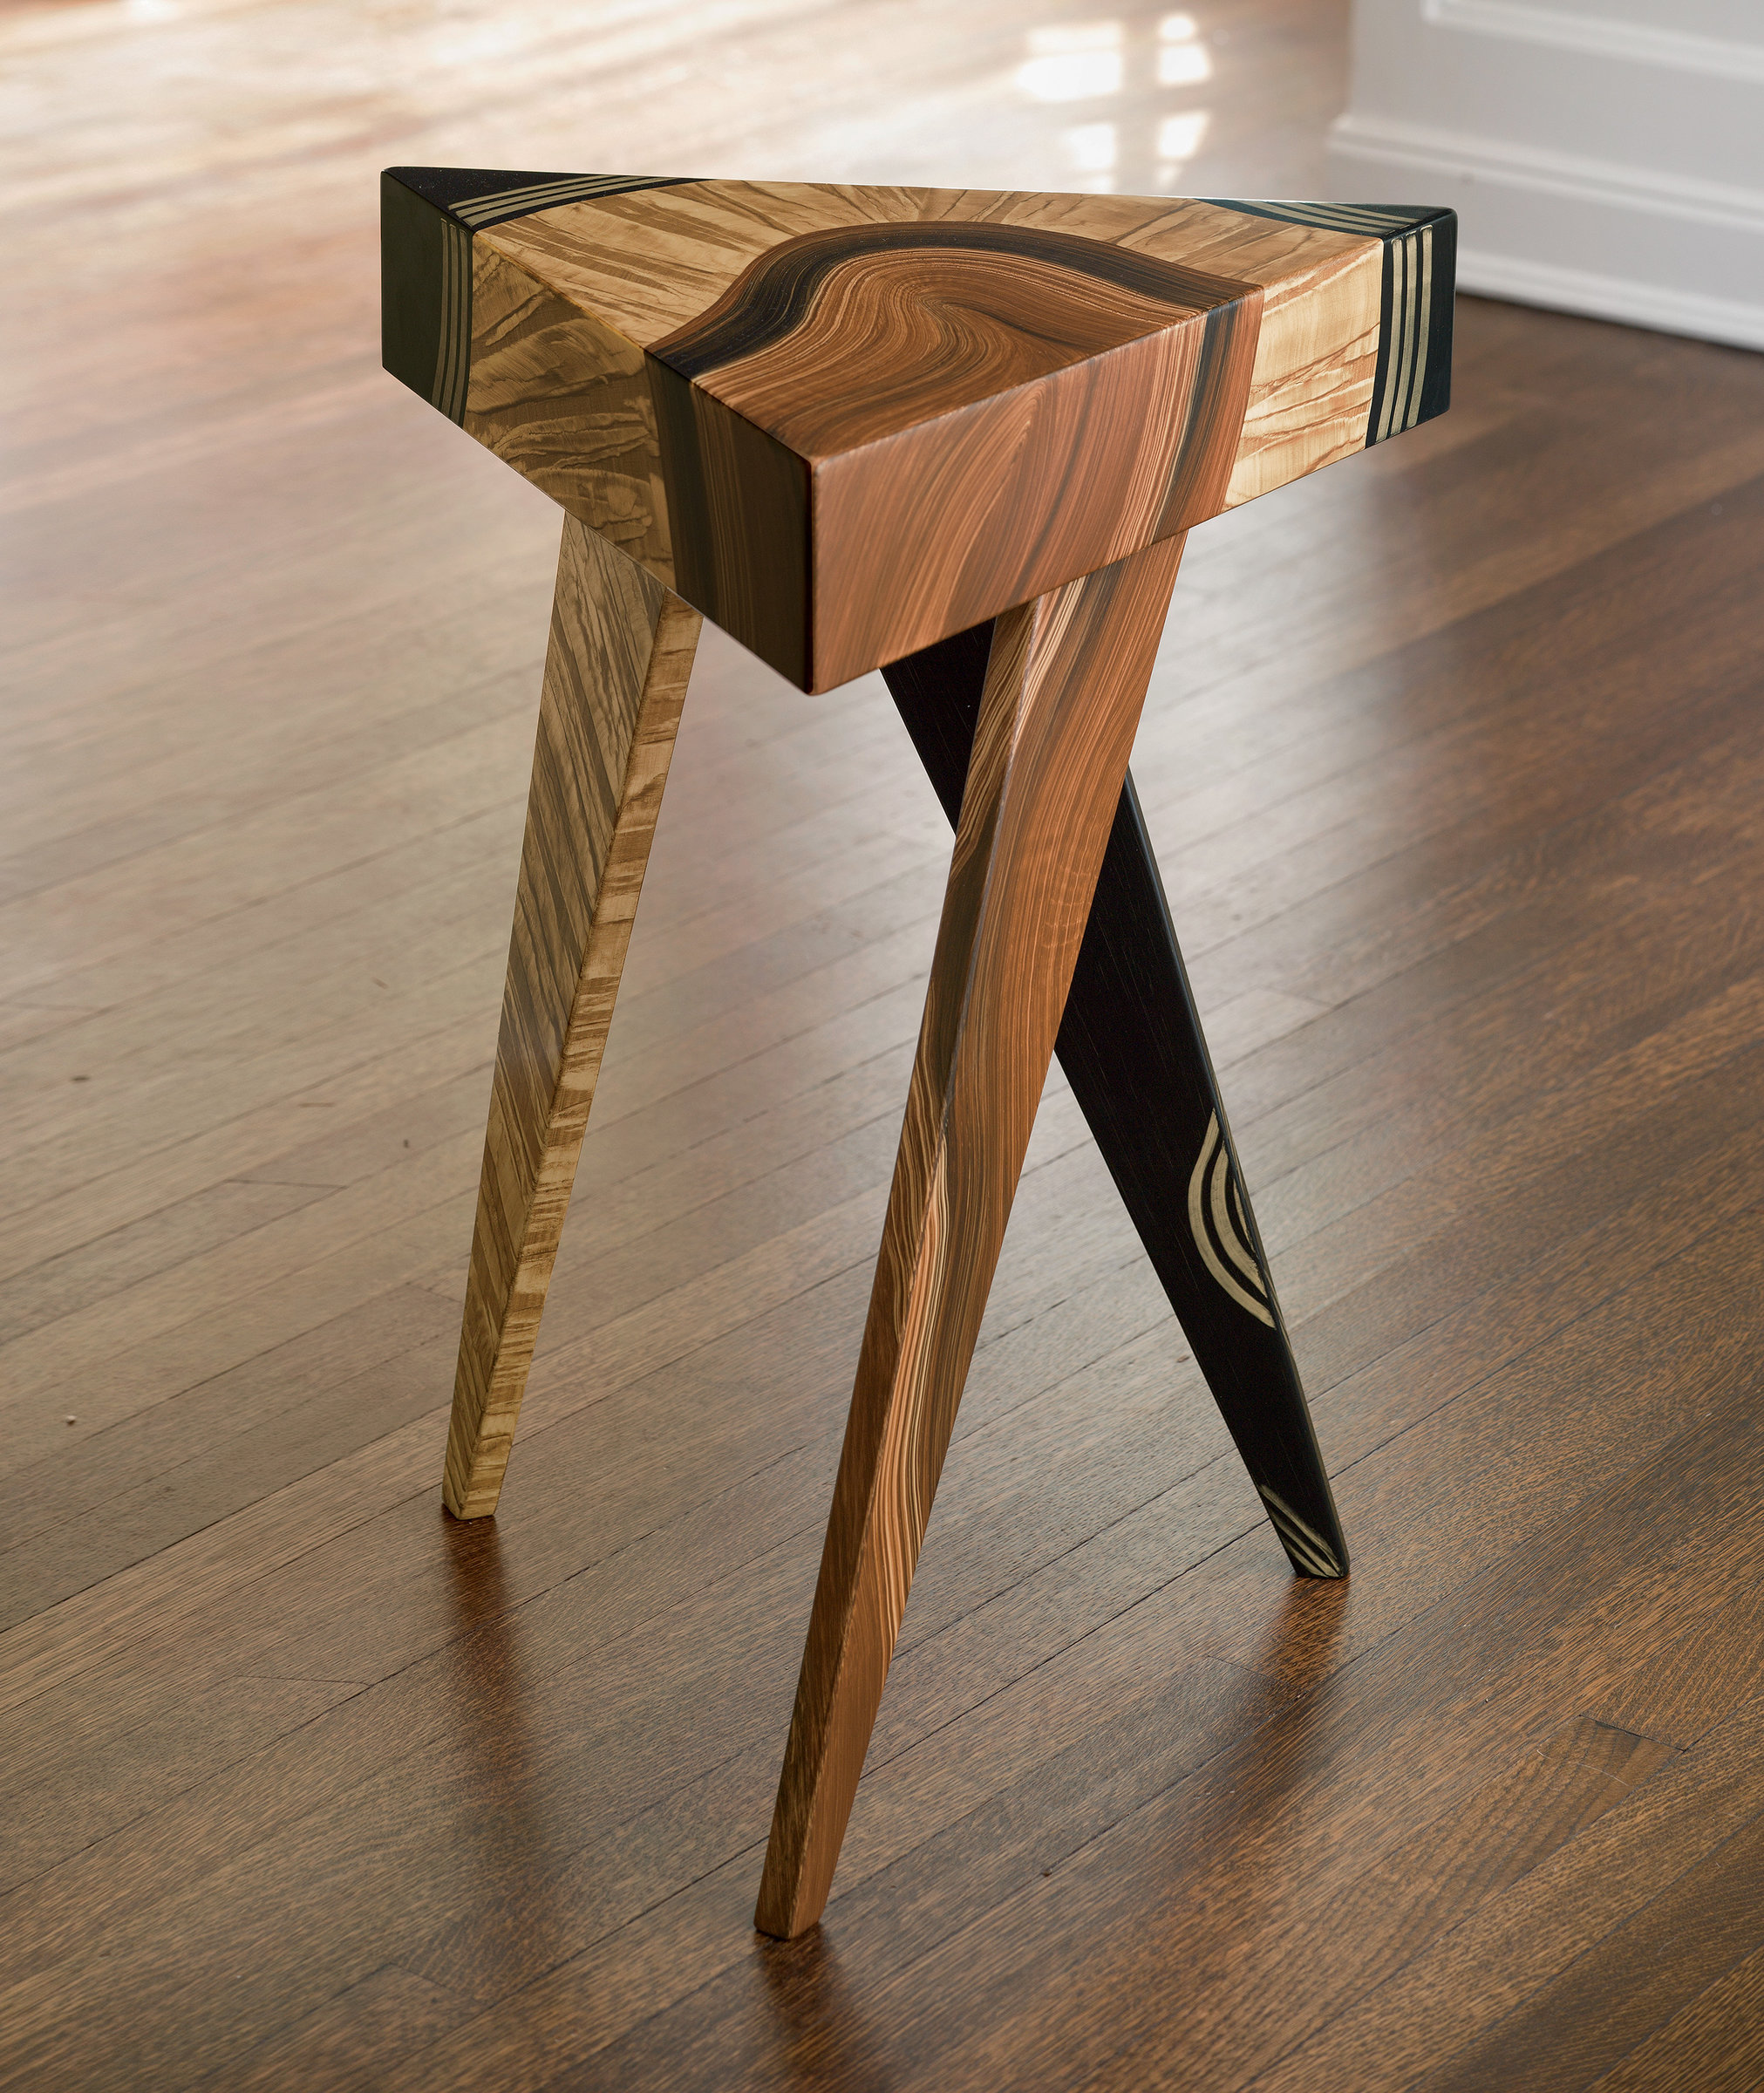 Vienna Triangle Table By Ingela Noren And Daniel Grant Wood Side Table Artful Home Side Table Wood Wood Furniture Plans Unique Furniture Design